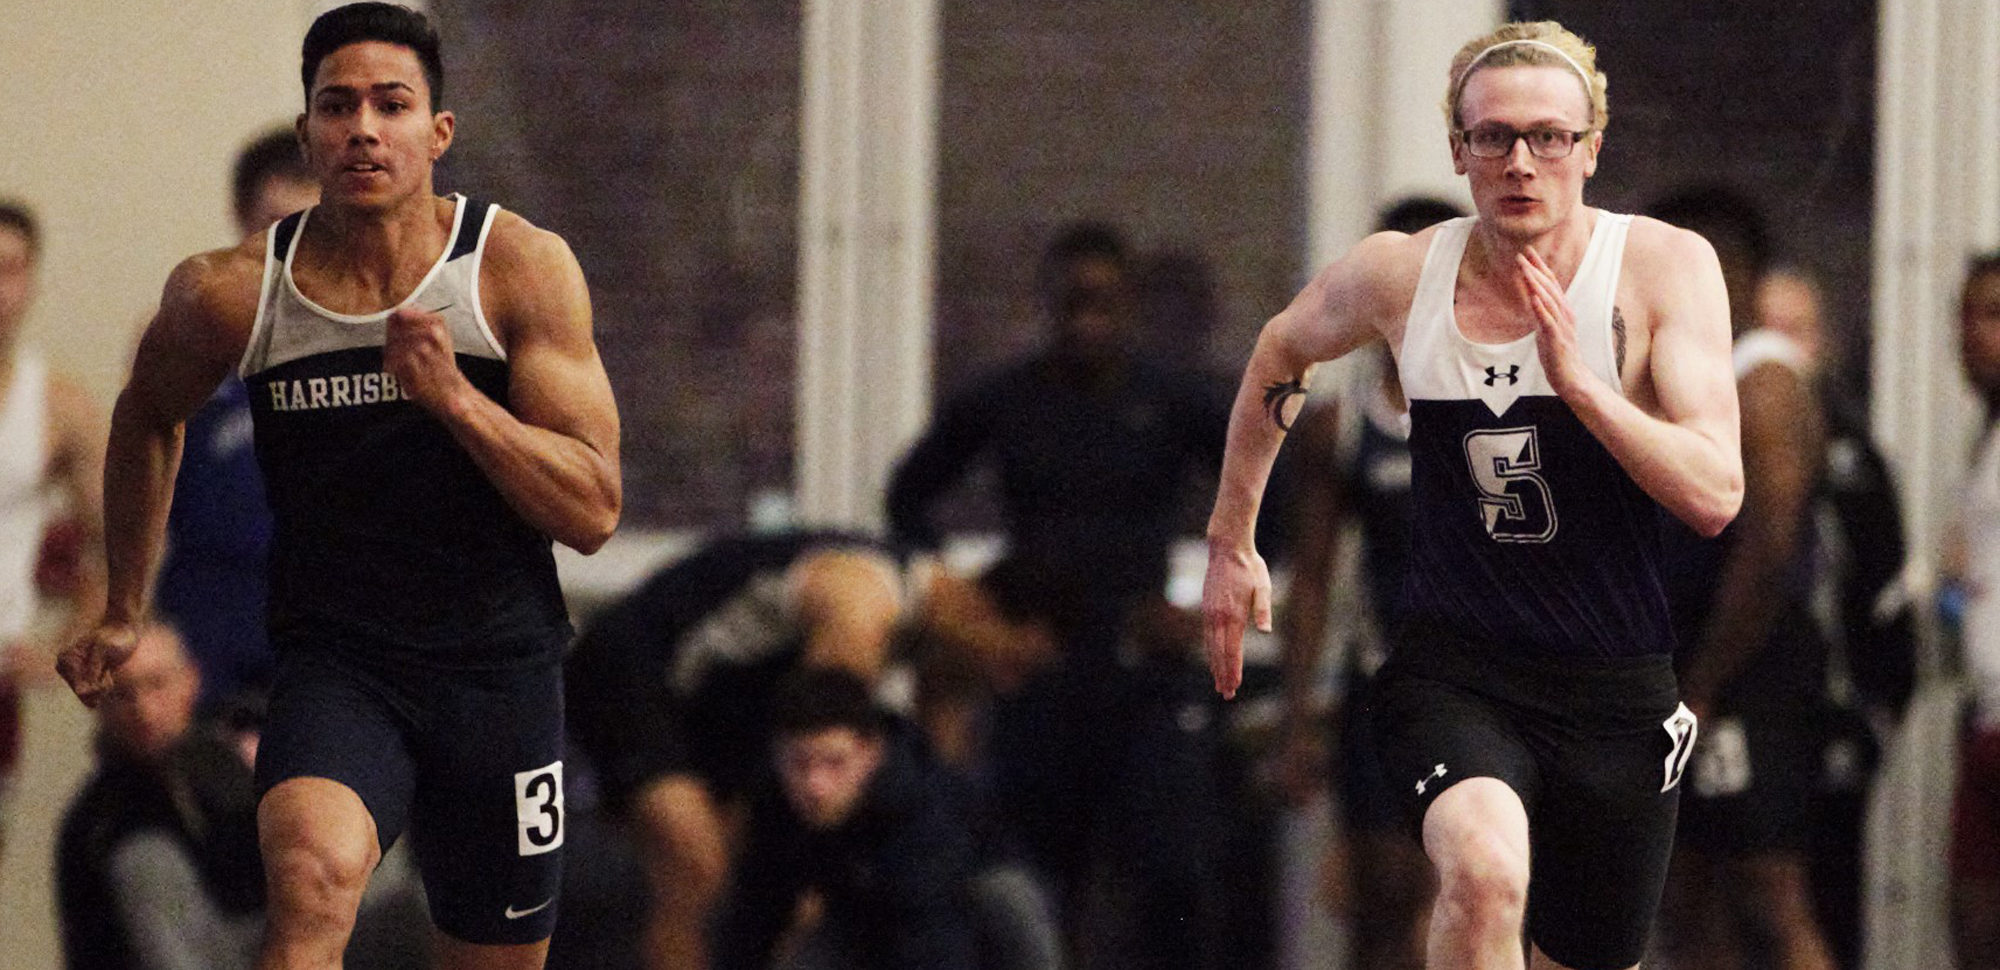 Connor Sharp and the Royals were picked sixth in the Landmark Conference men's indoor track & field preseason poll.